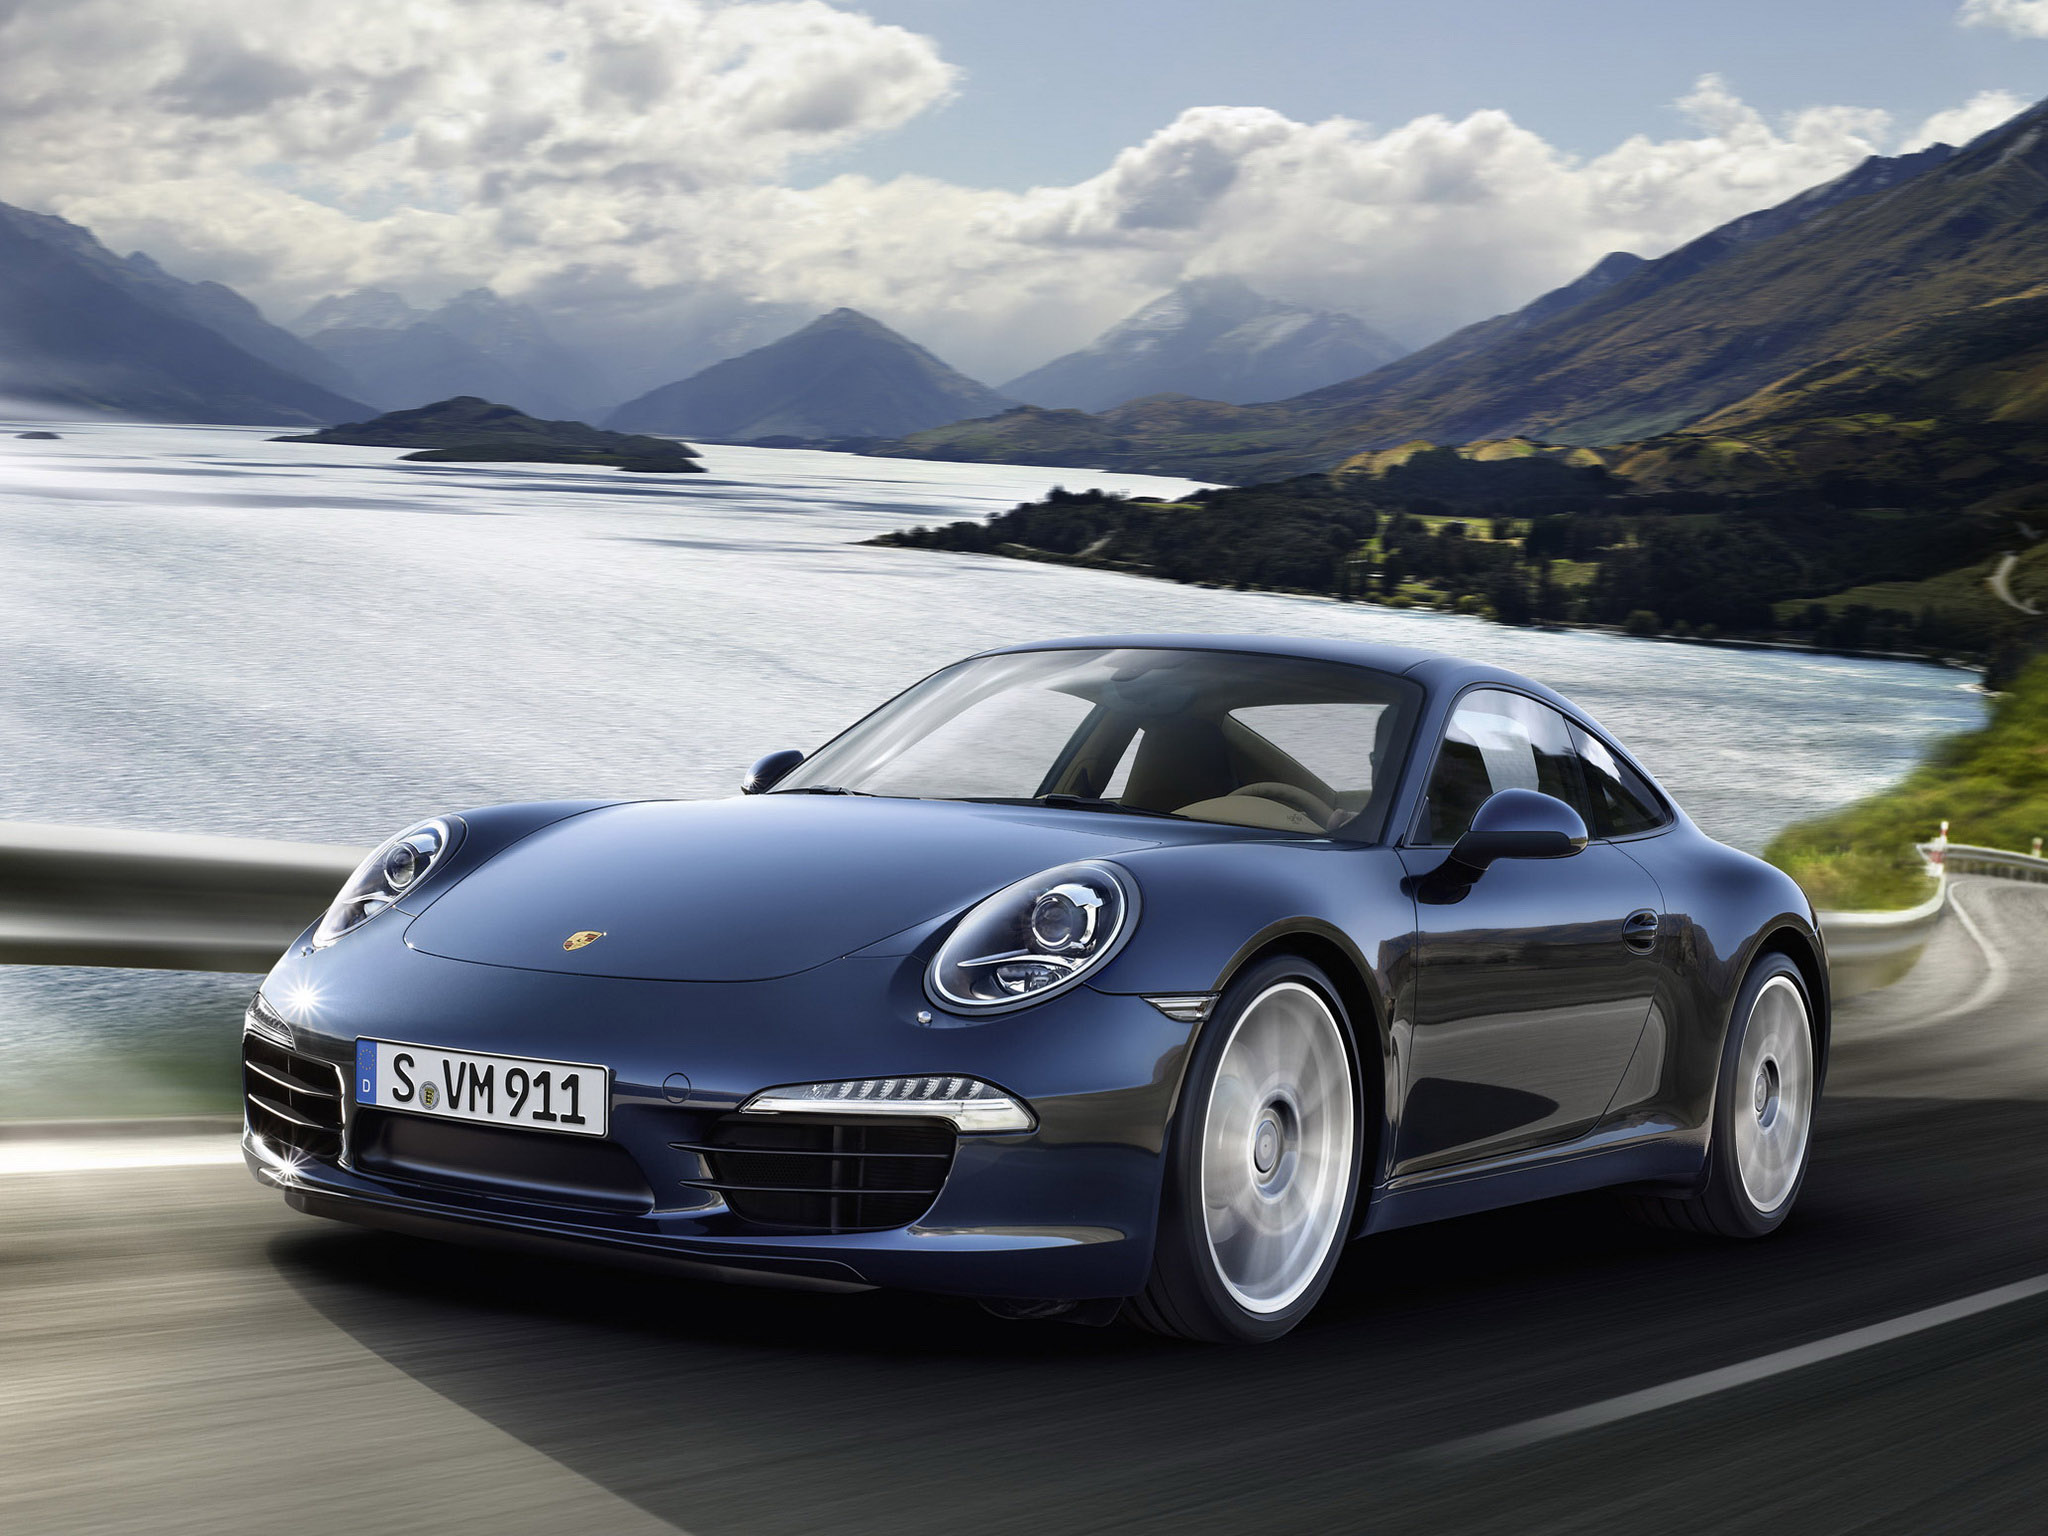 porsche 911 carrera s history photos on better parts ltd